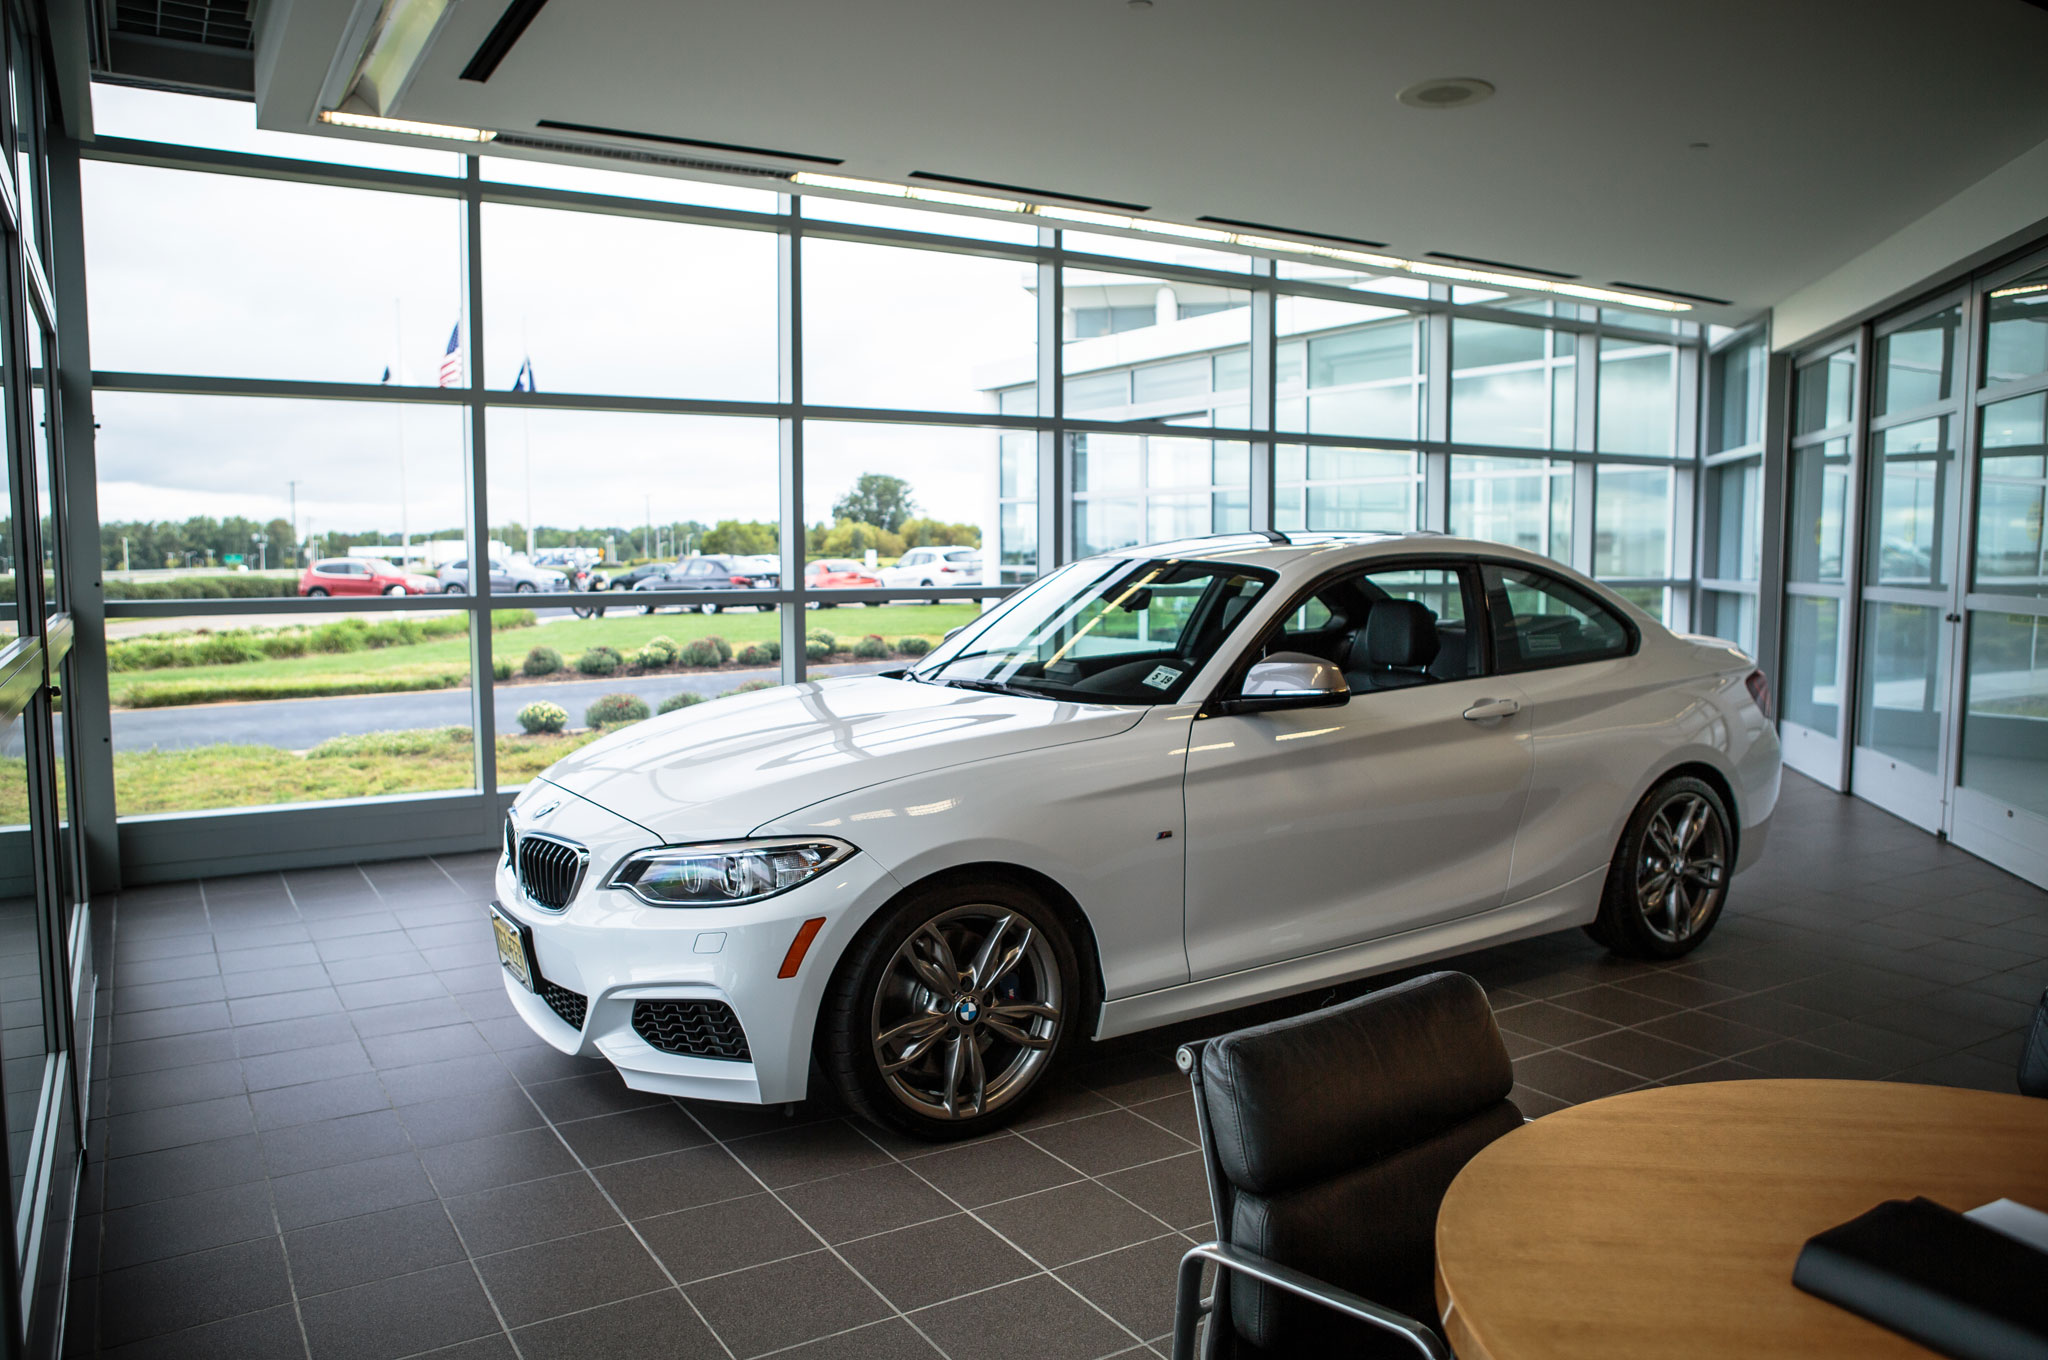 2014 Bmw M235i Four Seasons Introduction